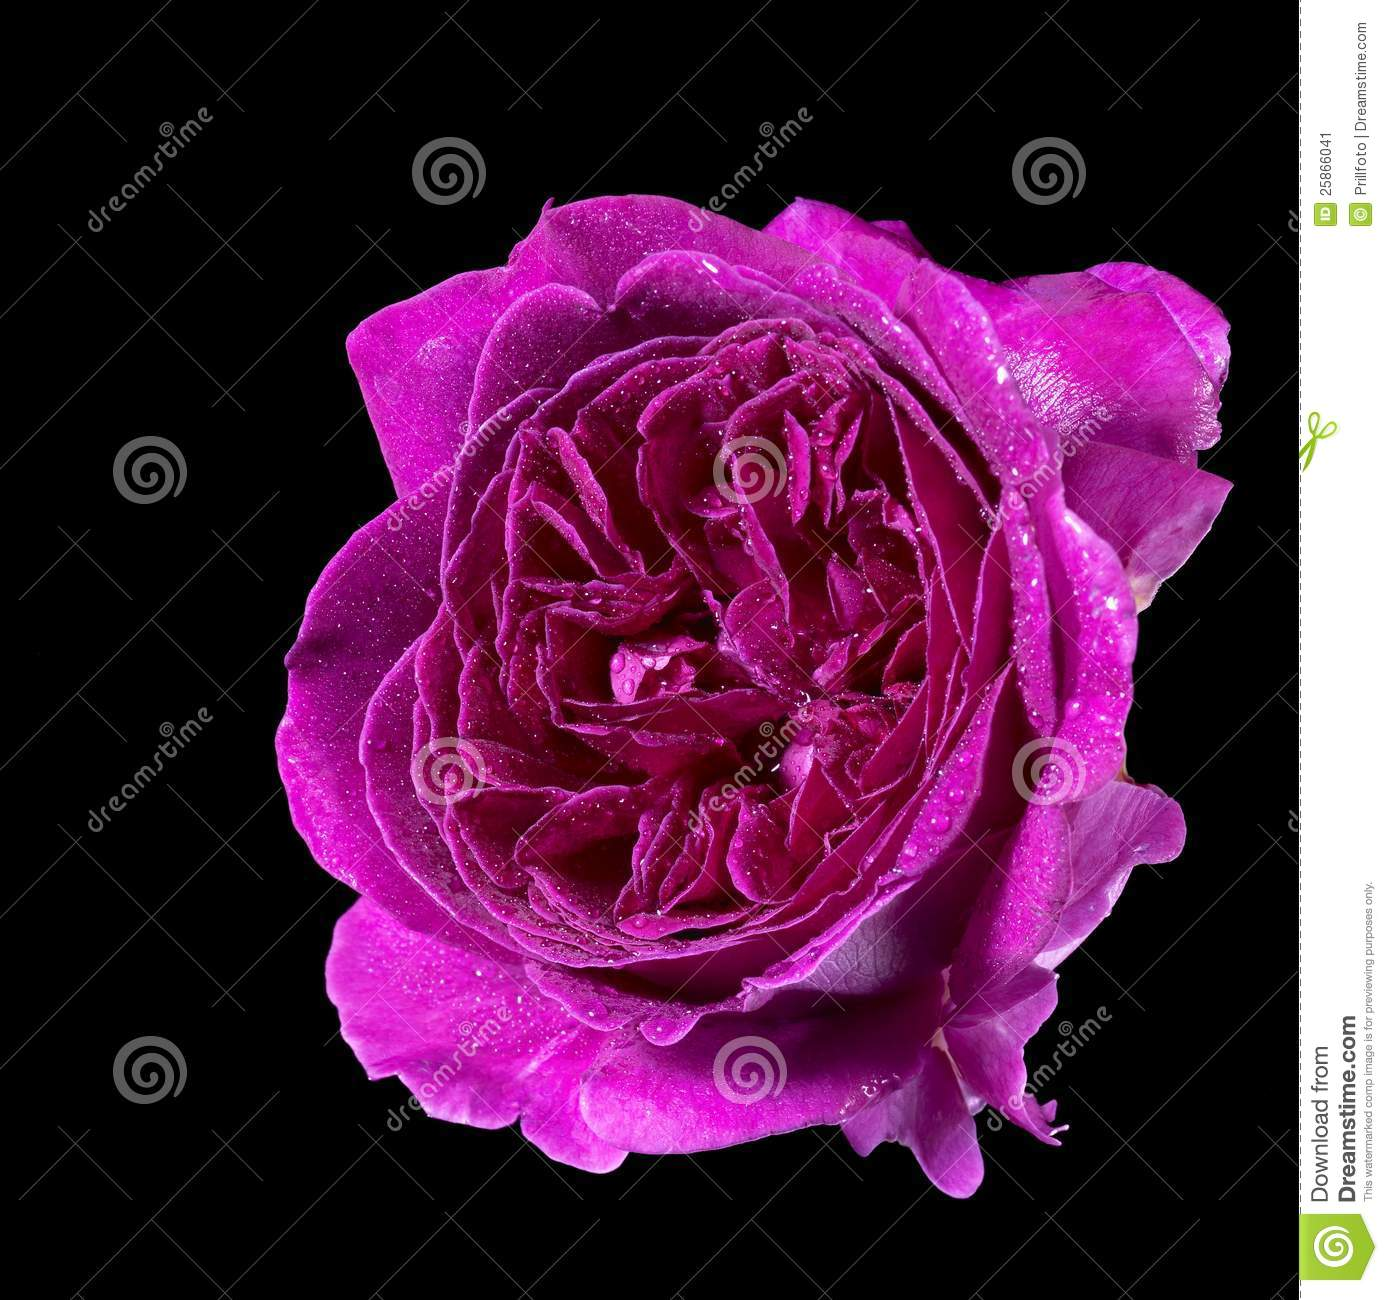 Wet purple rose flower stock image. Image of perfection - 25866041